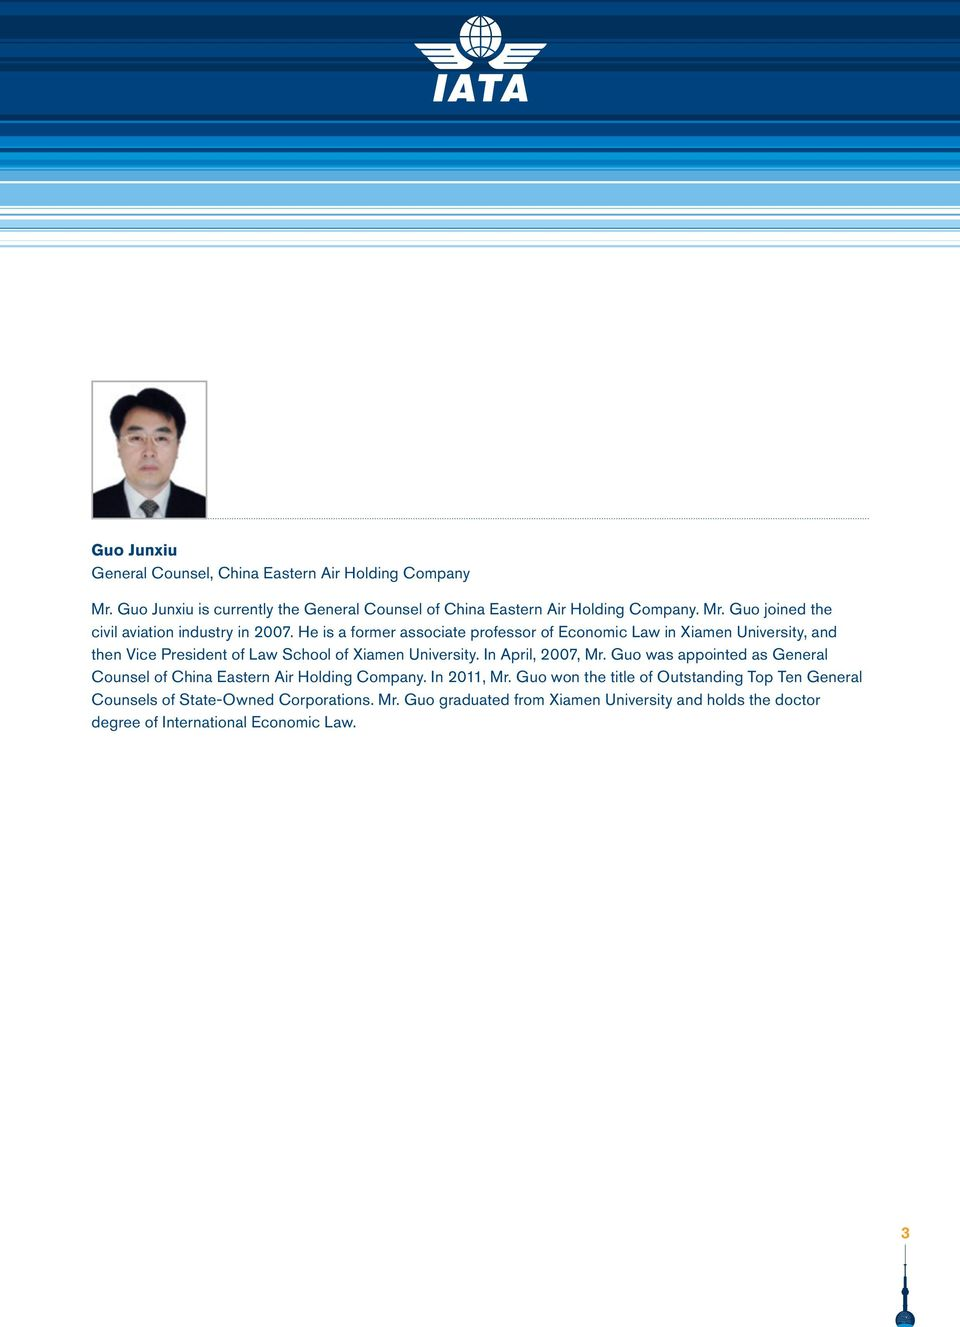 Guo was appointed as General Counsel of China Eastern Air Holding Company. In 2011, Mr.